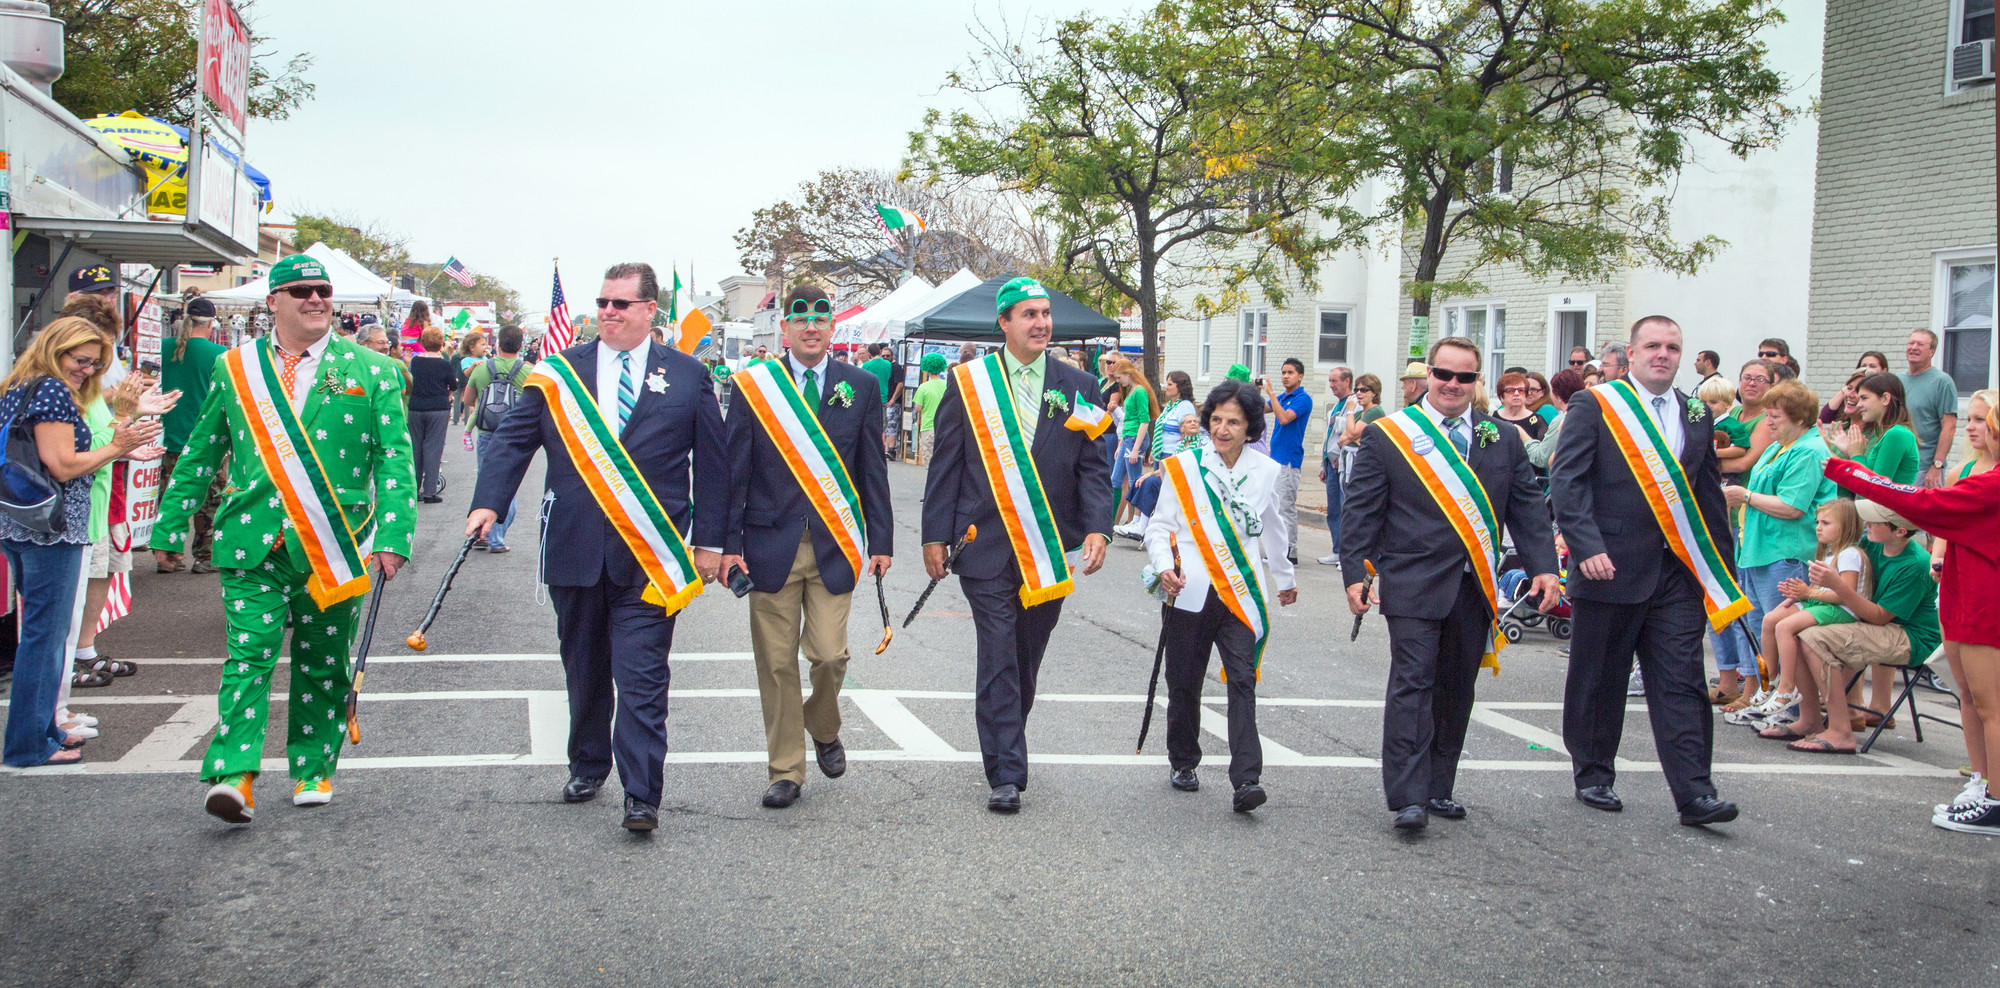 The honorees of the 24th annual St. Brendan's Day Parade and Festival, from left: 2013 Ancient Order of Hibernians Division 17 Man of the Year Sean Sullivan, Grand Marshal Brian Sharkey, Bryan Murphy, Man of the Year Michael Carroll, Rita Kelly, Doug O'Grady and New York AOH Board Vice President Timothy McSweeney.